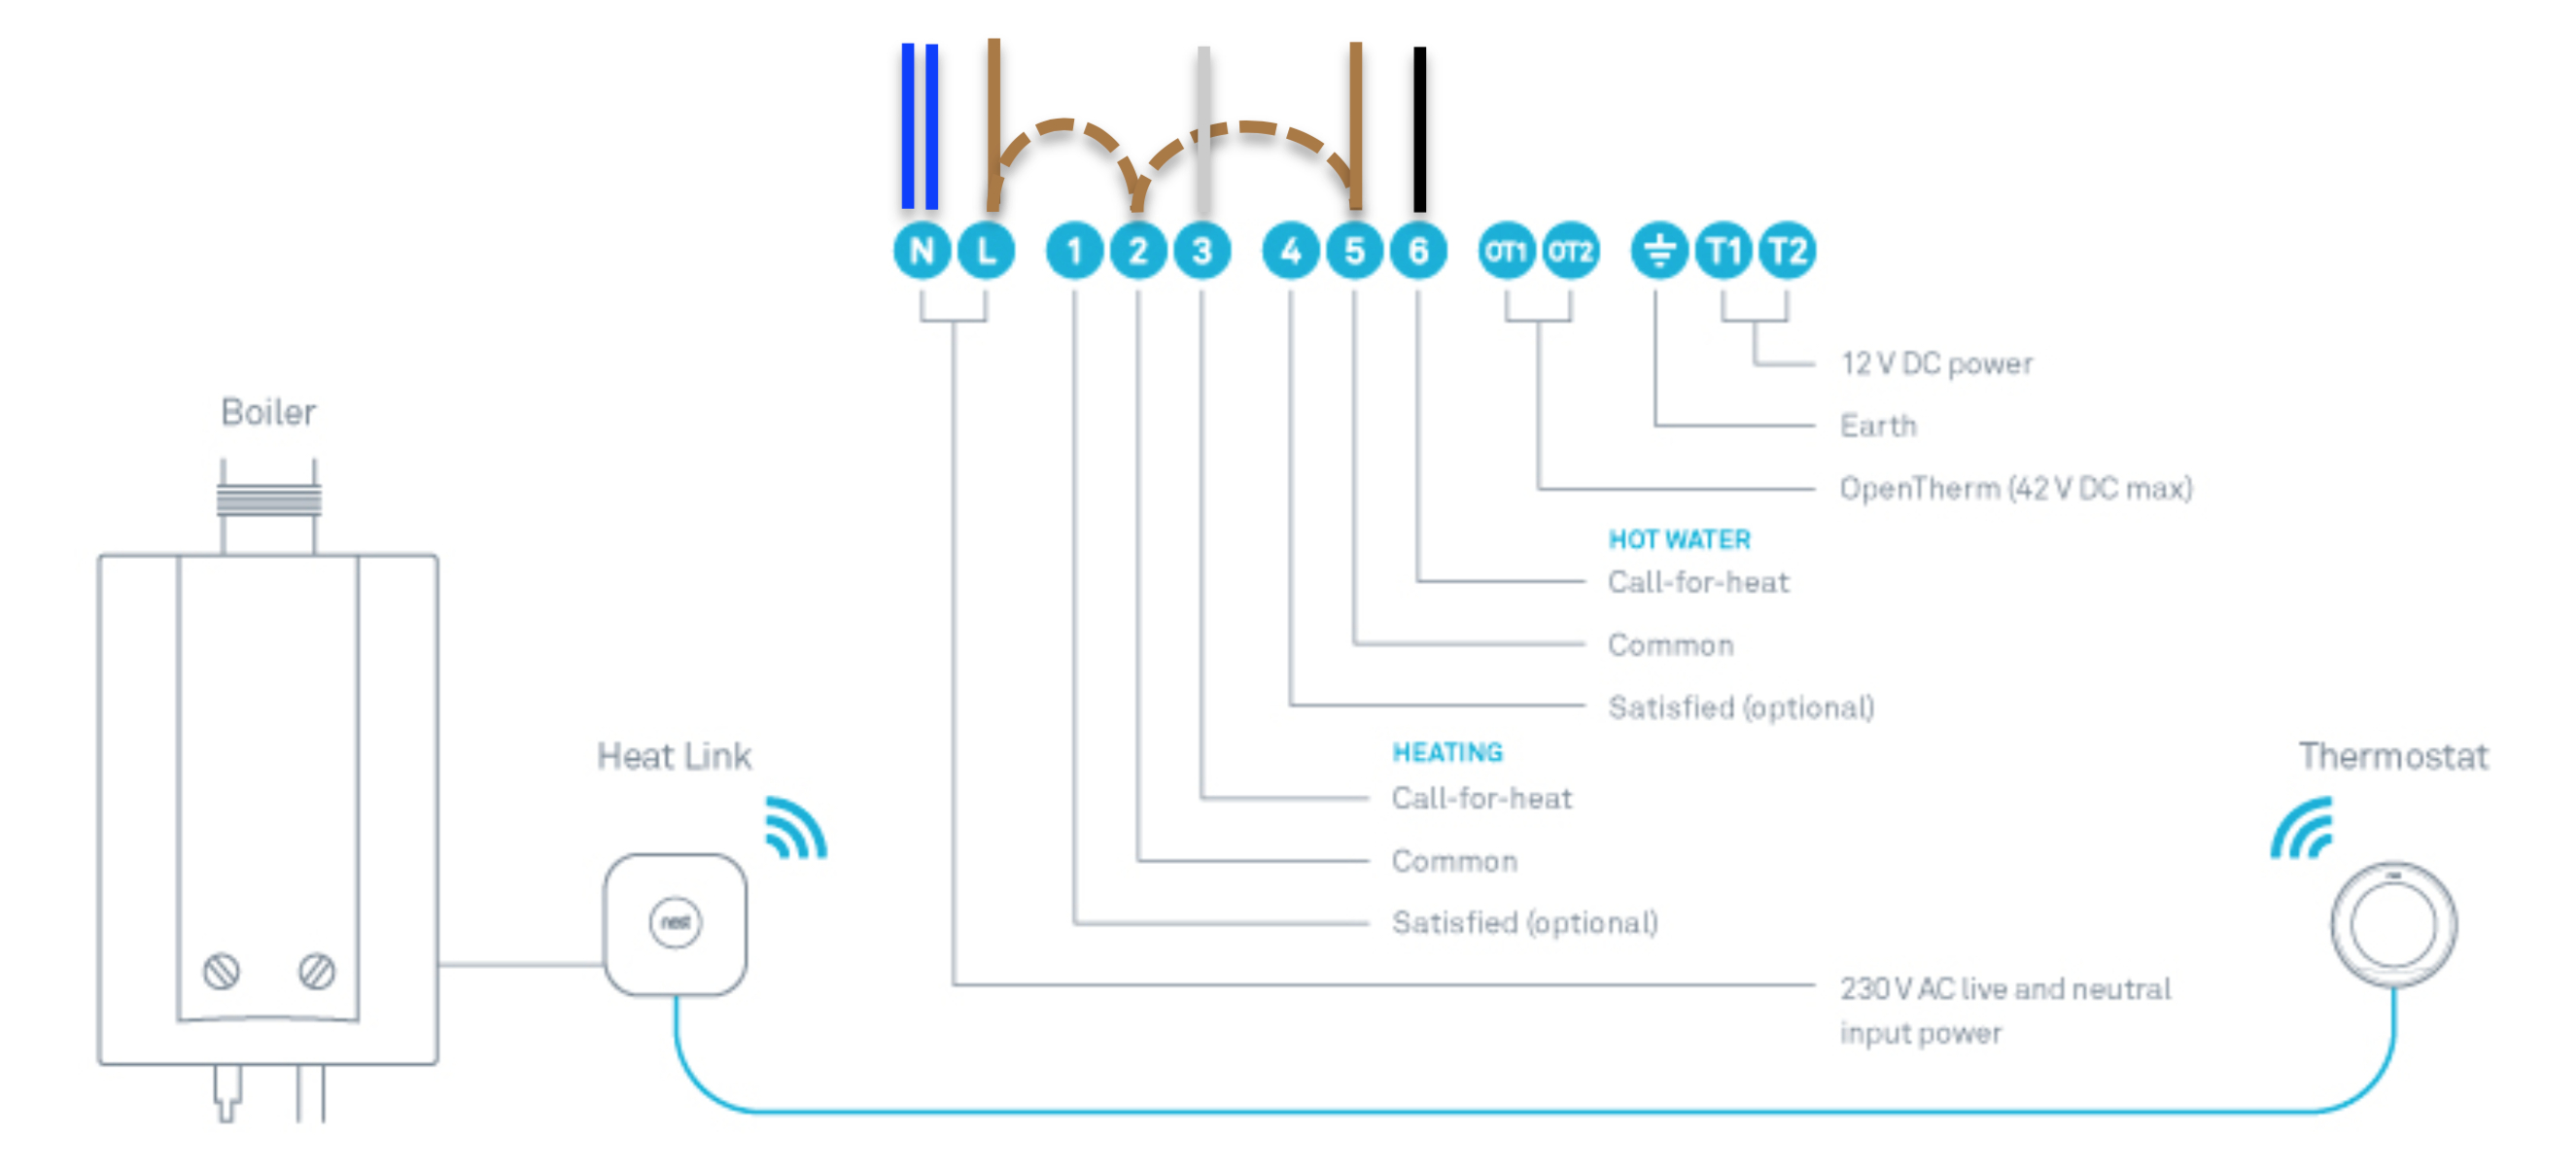 Nest thermostat 3rd Generation Wiring Diagram Gallery ... on